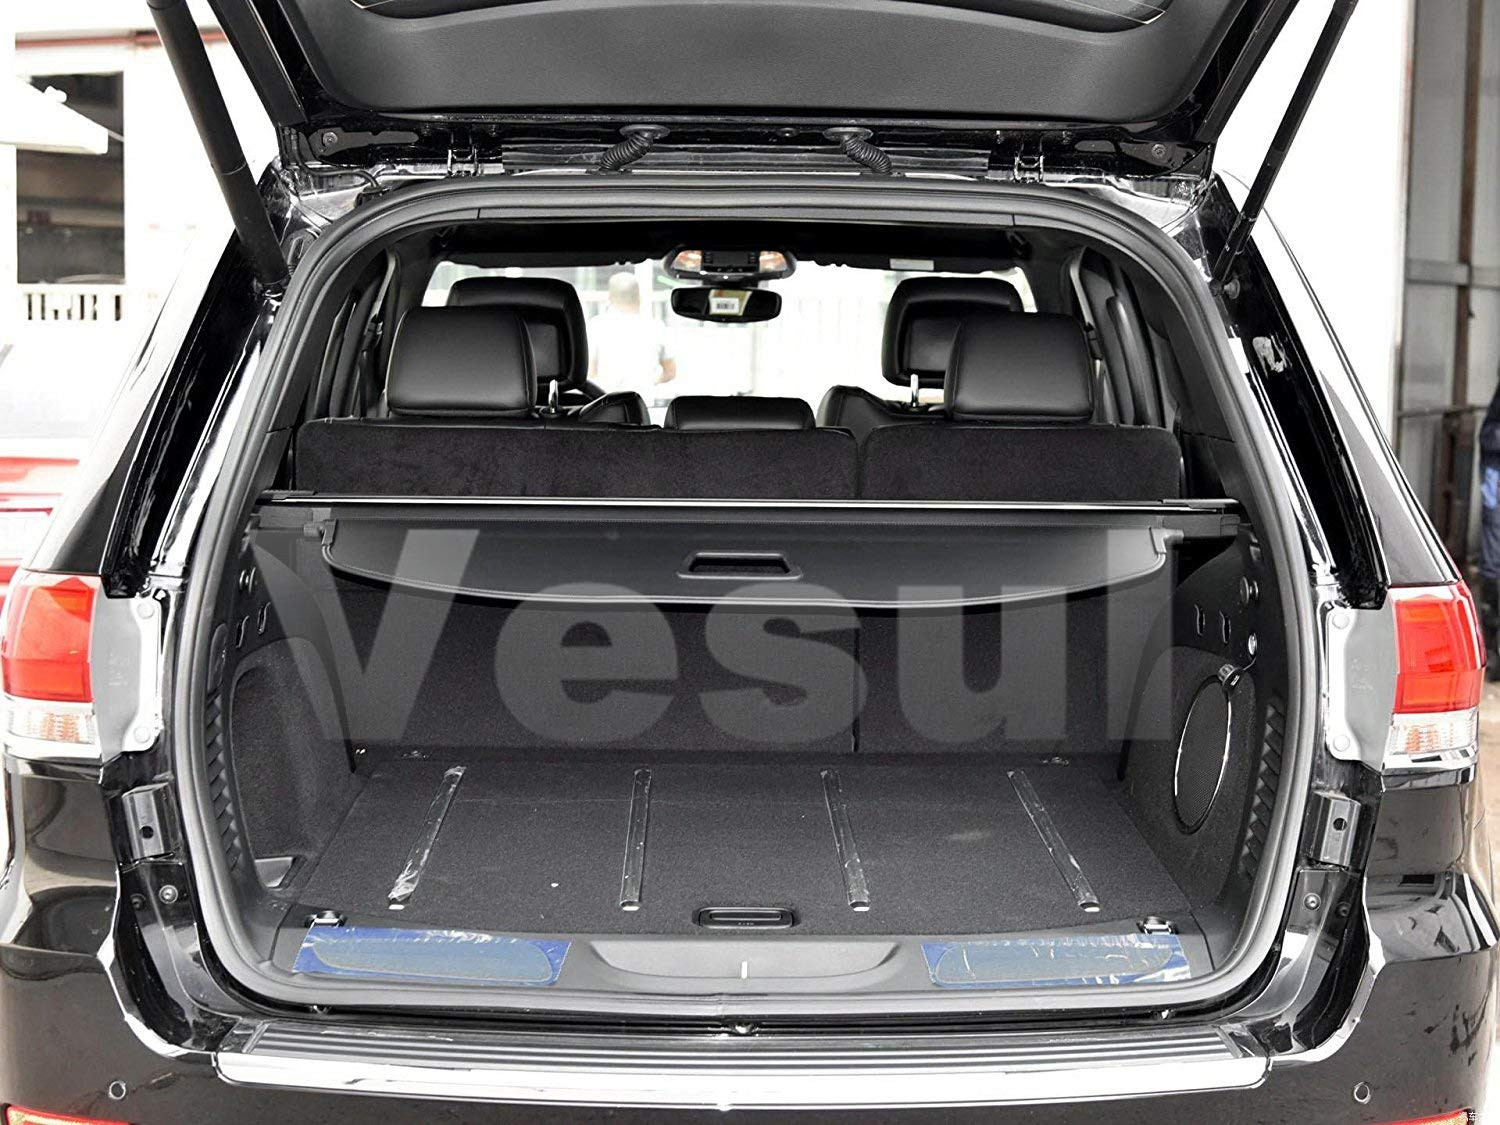 Vesul Black Updated Tonneau Cover Retractable Rear Trunk Cargo Luggage Security Shade Fits on Jeep Grand Cherokee 2011-2019(with Extra Canvas Cover)